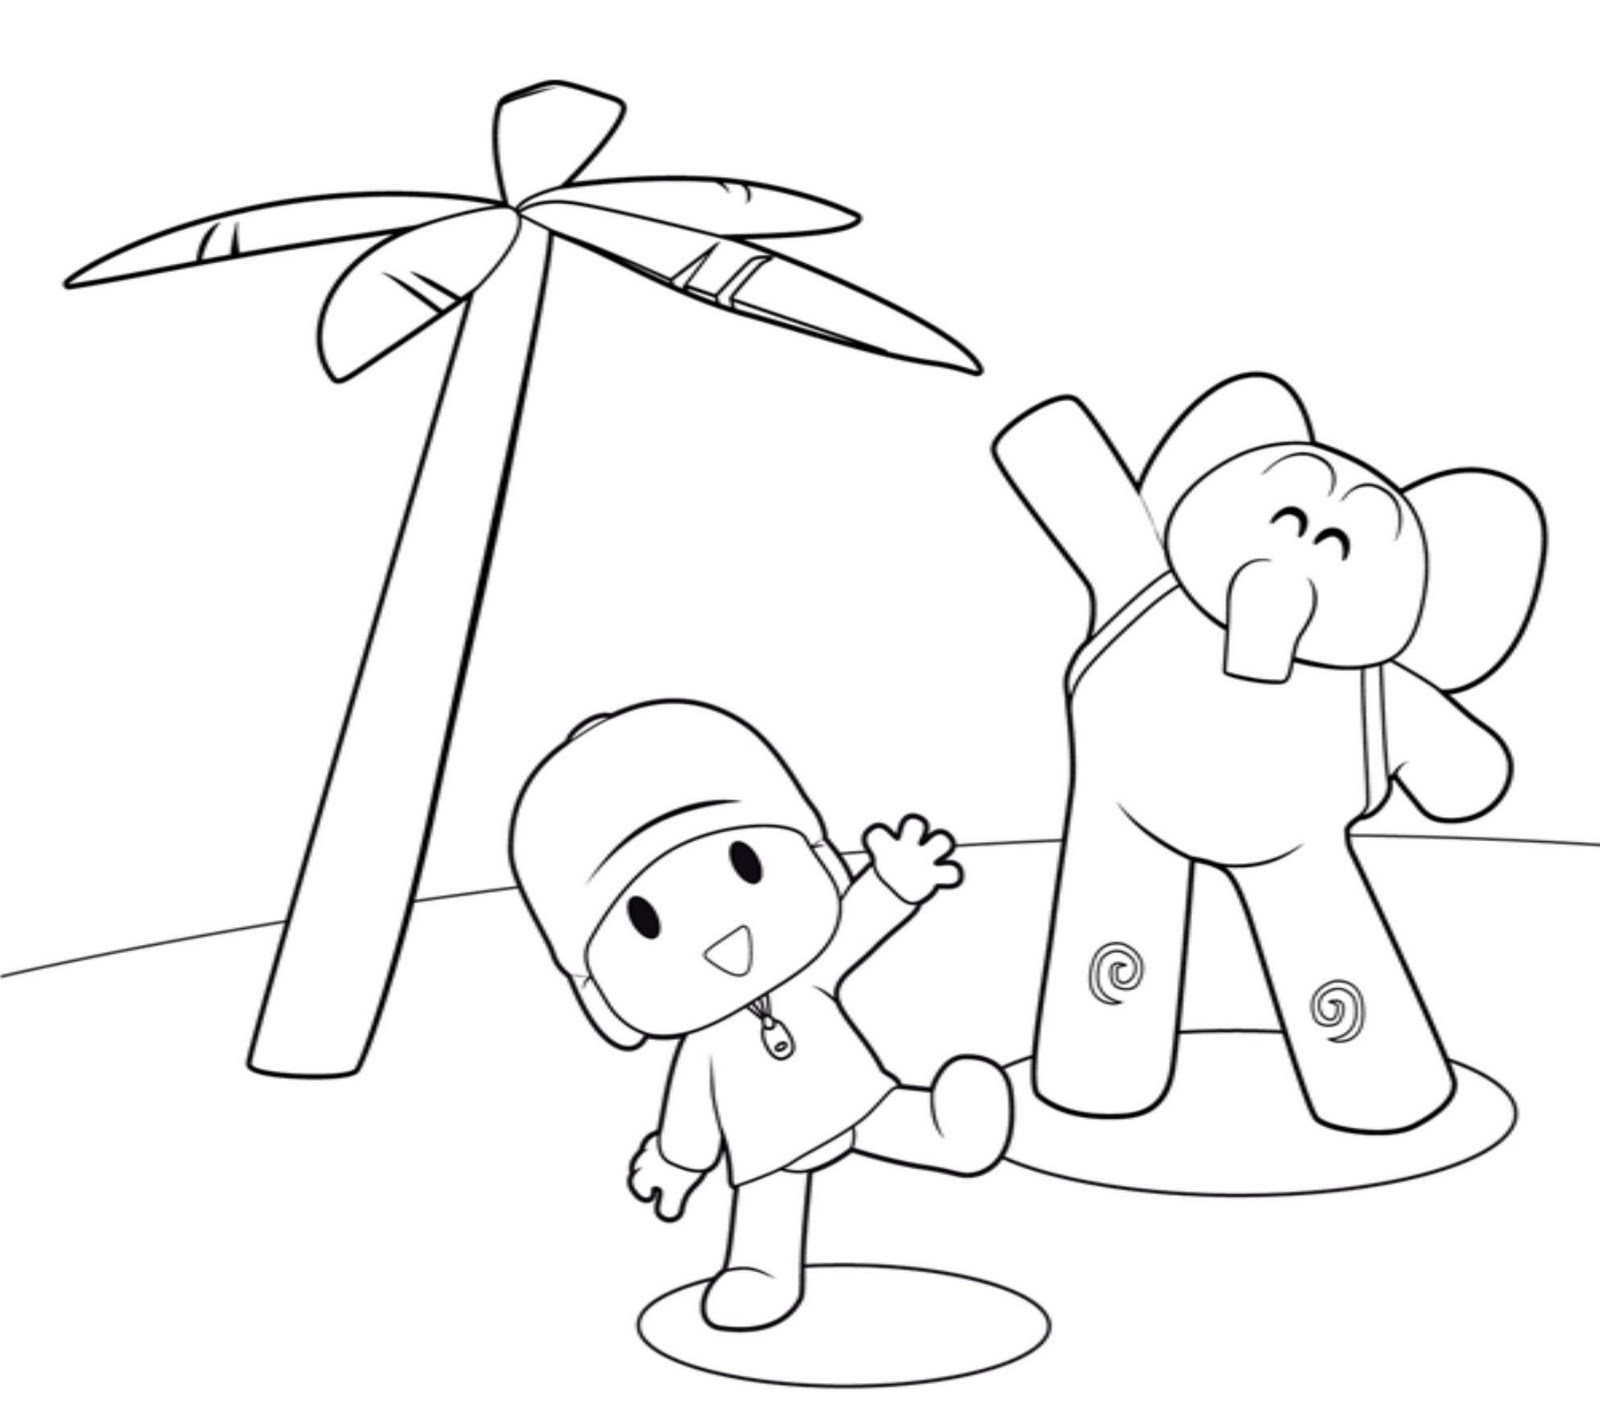 Pocoyo Coloring Pages Free Printable Coloring Pages Coloring Pages Of A